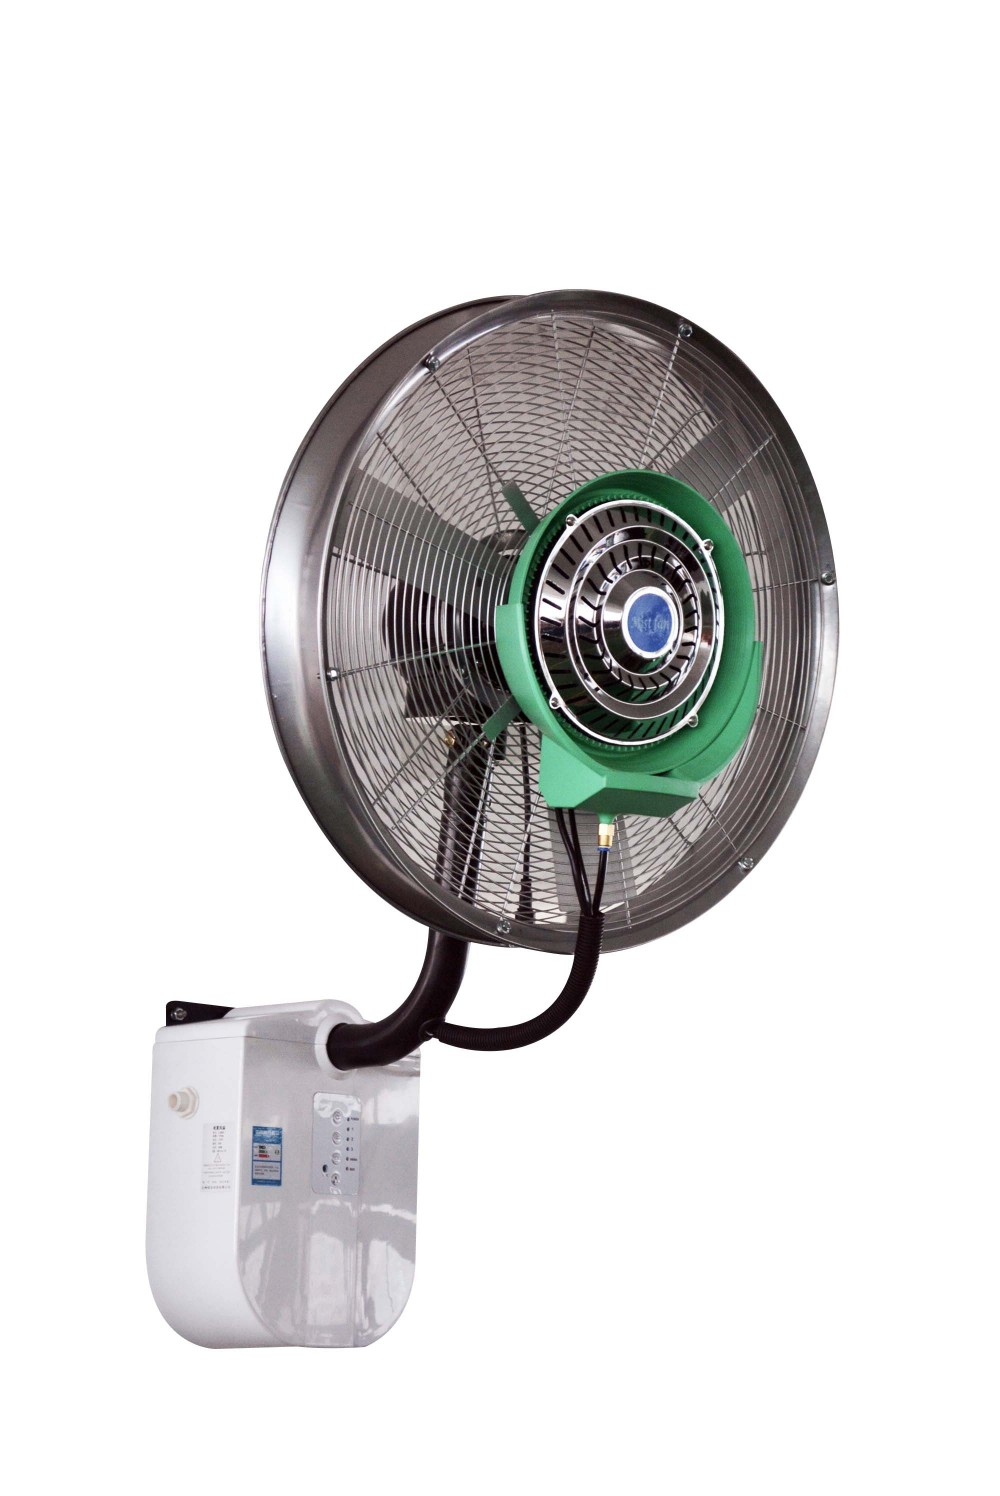 Pool Side Misting Fans : Wall mist fan with remote control buy